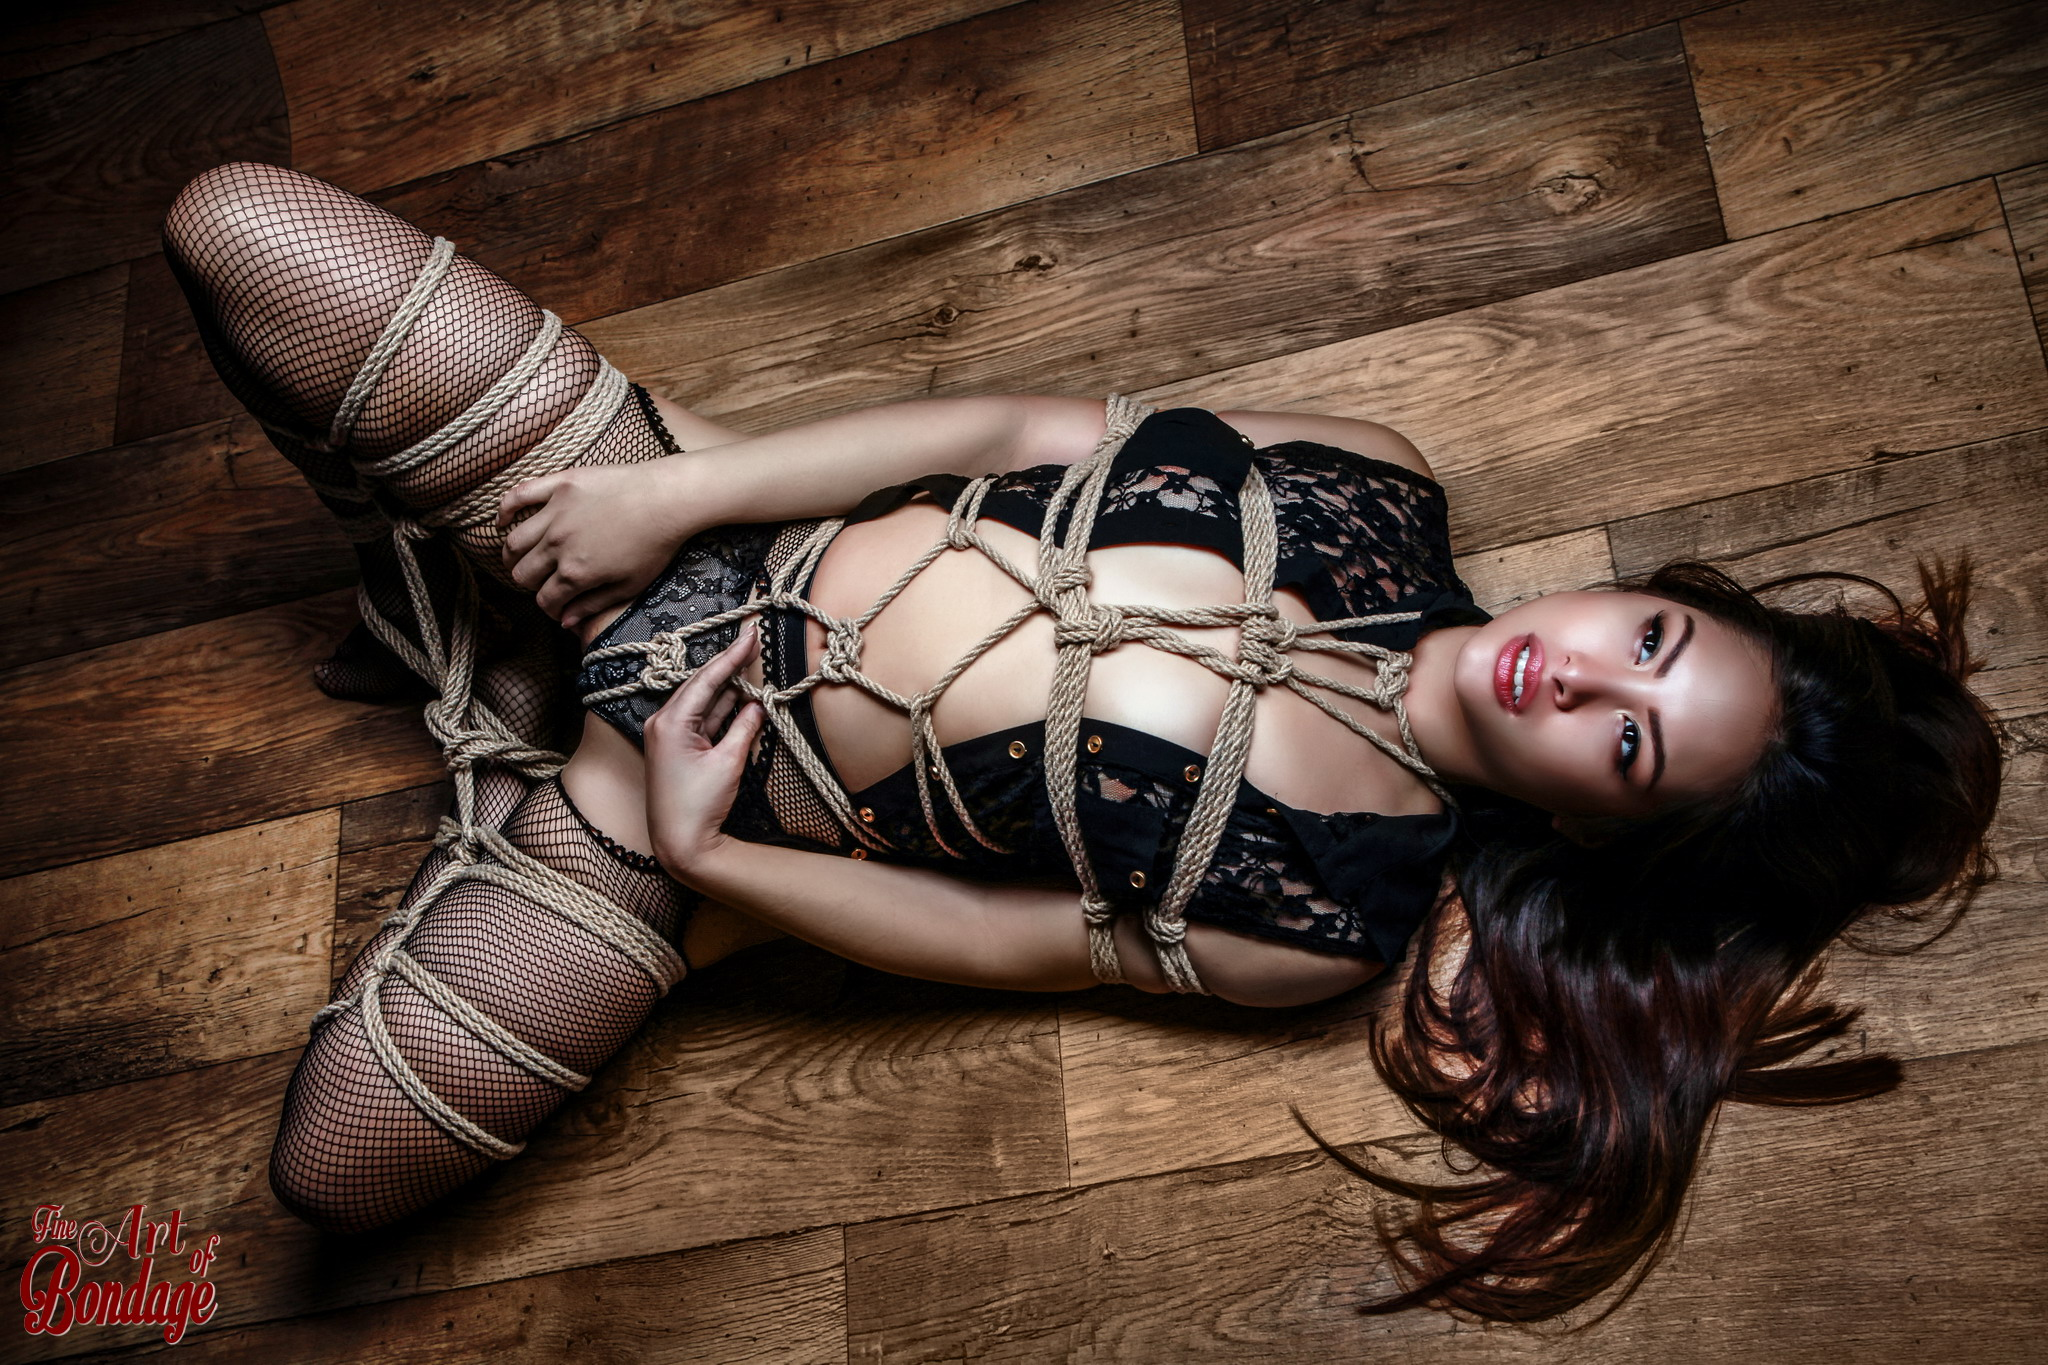 Gallery - Fine Art Of Bondage-6120